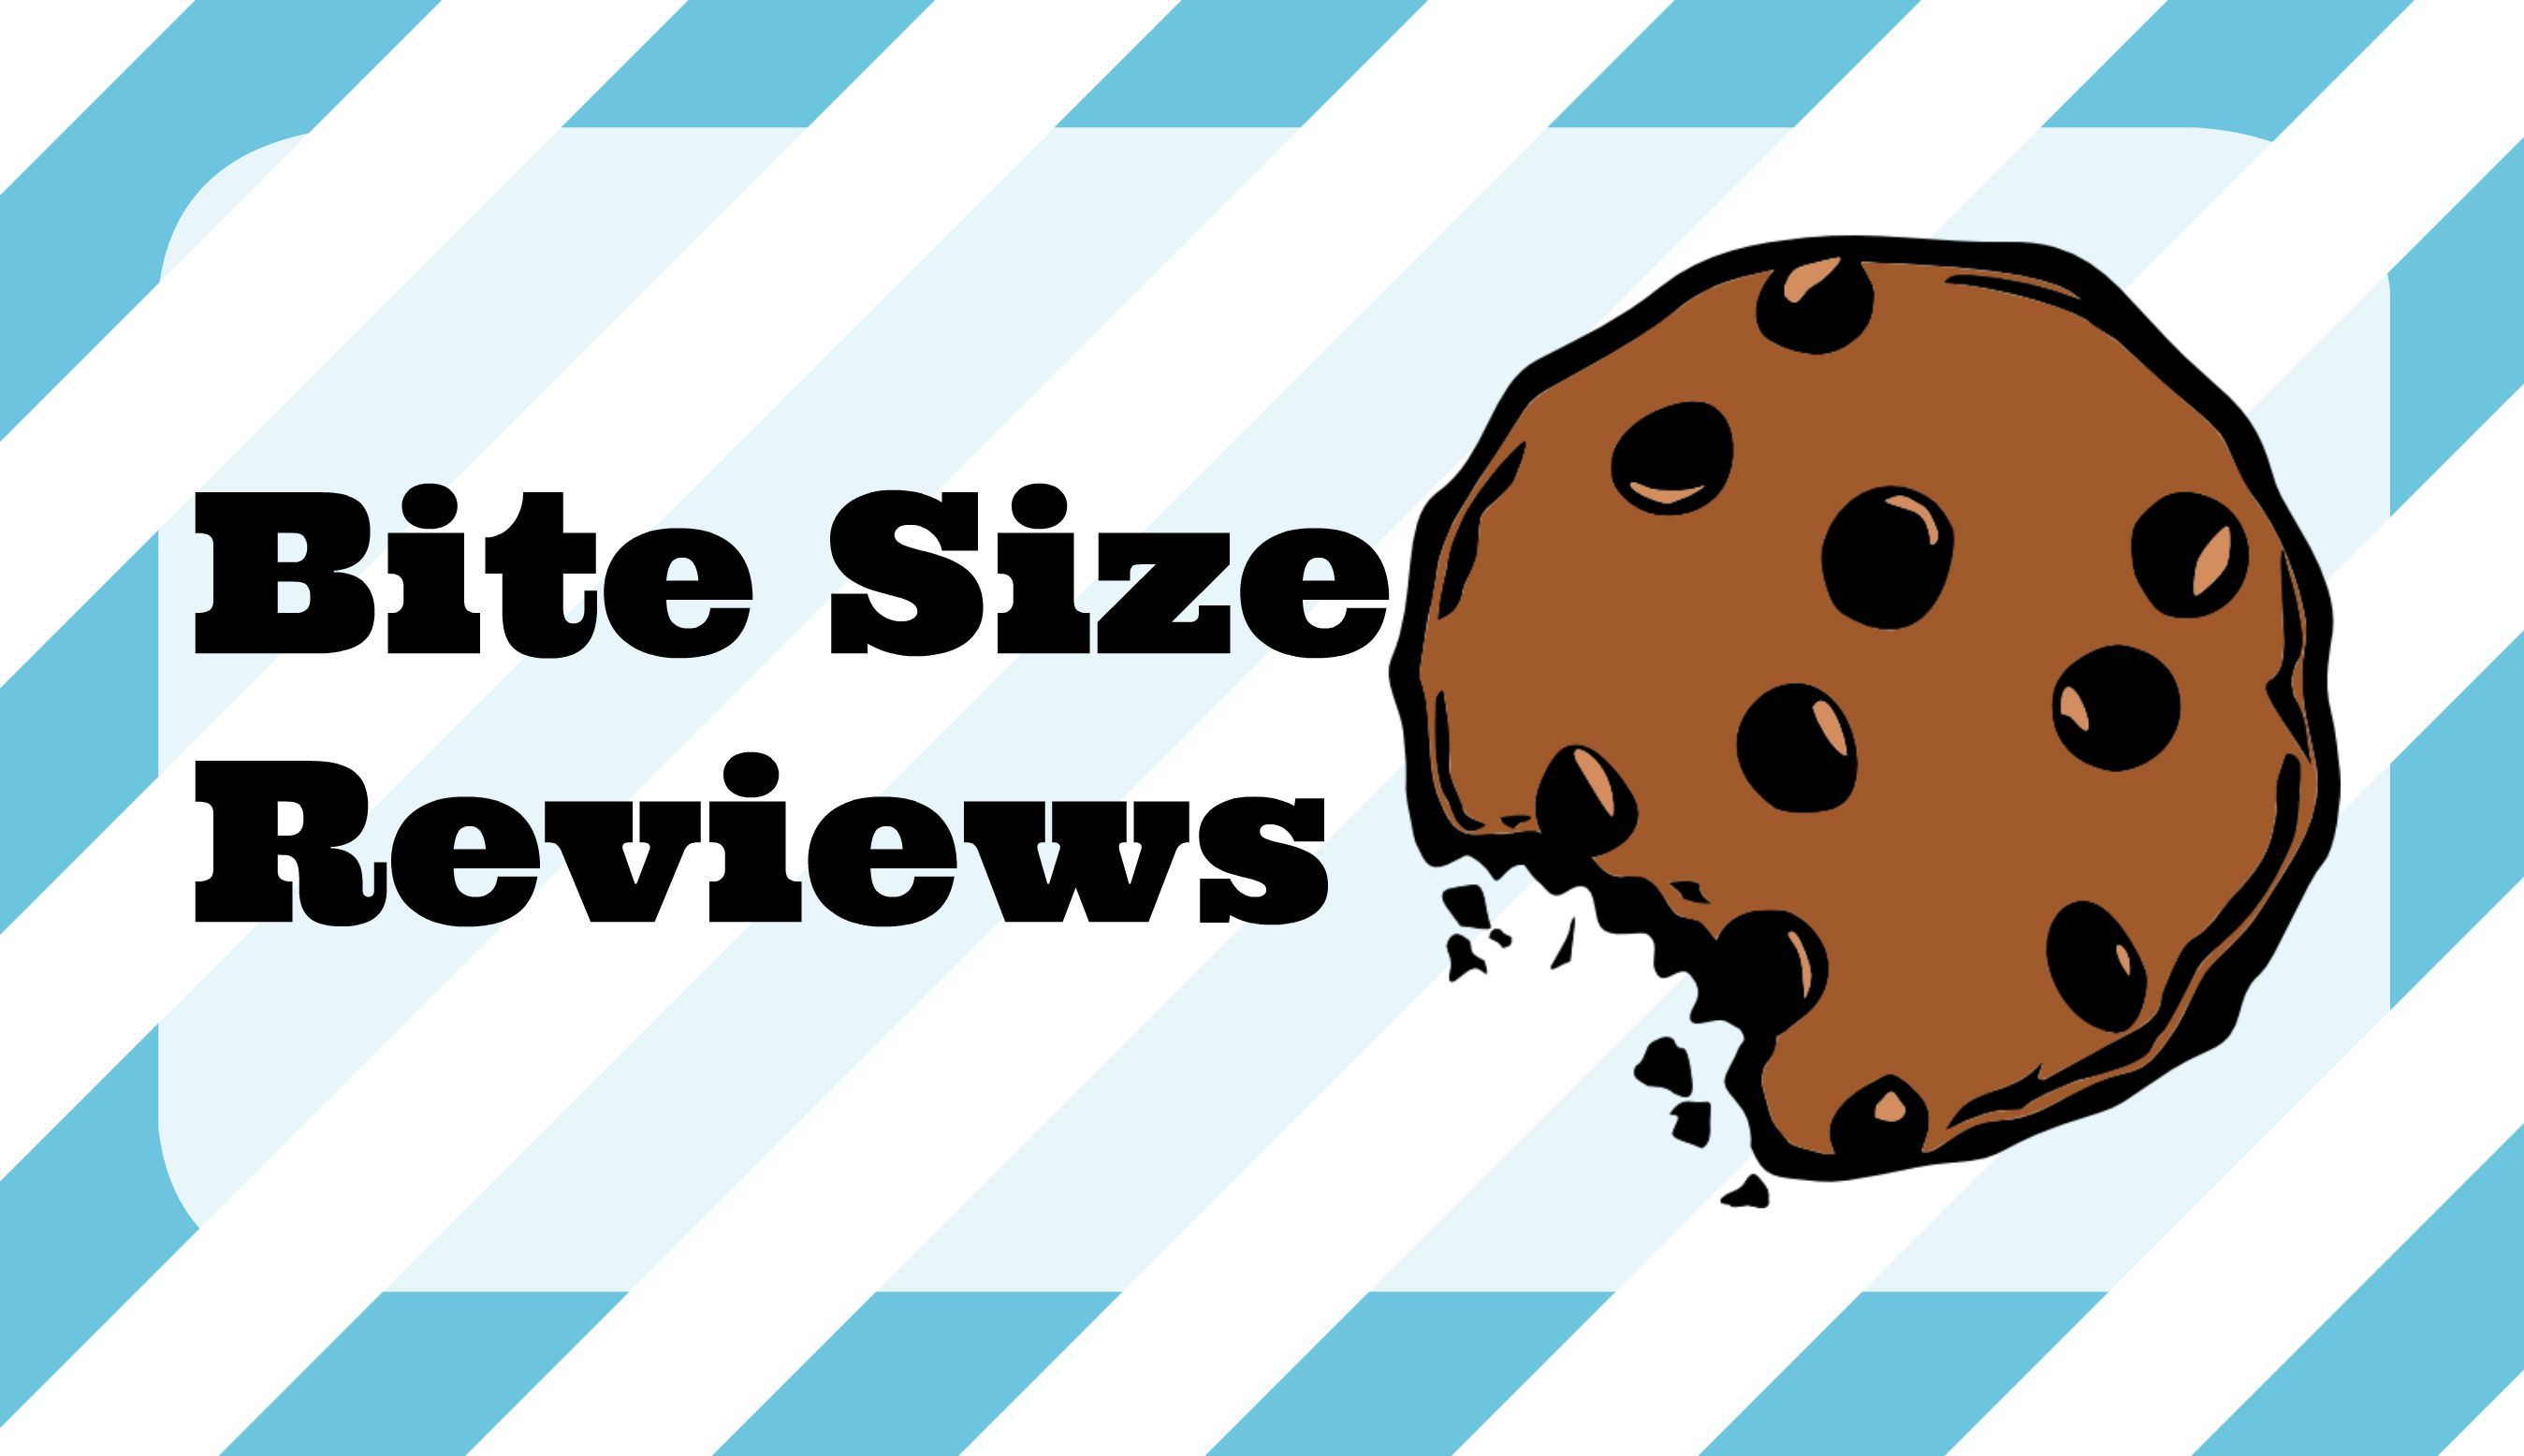 bitesizereviews